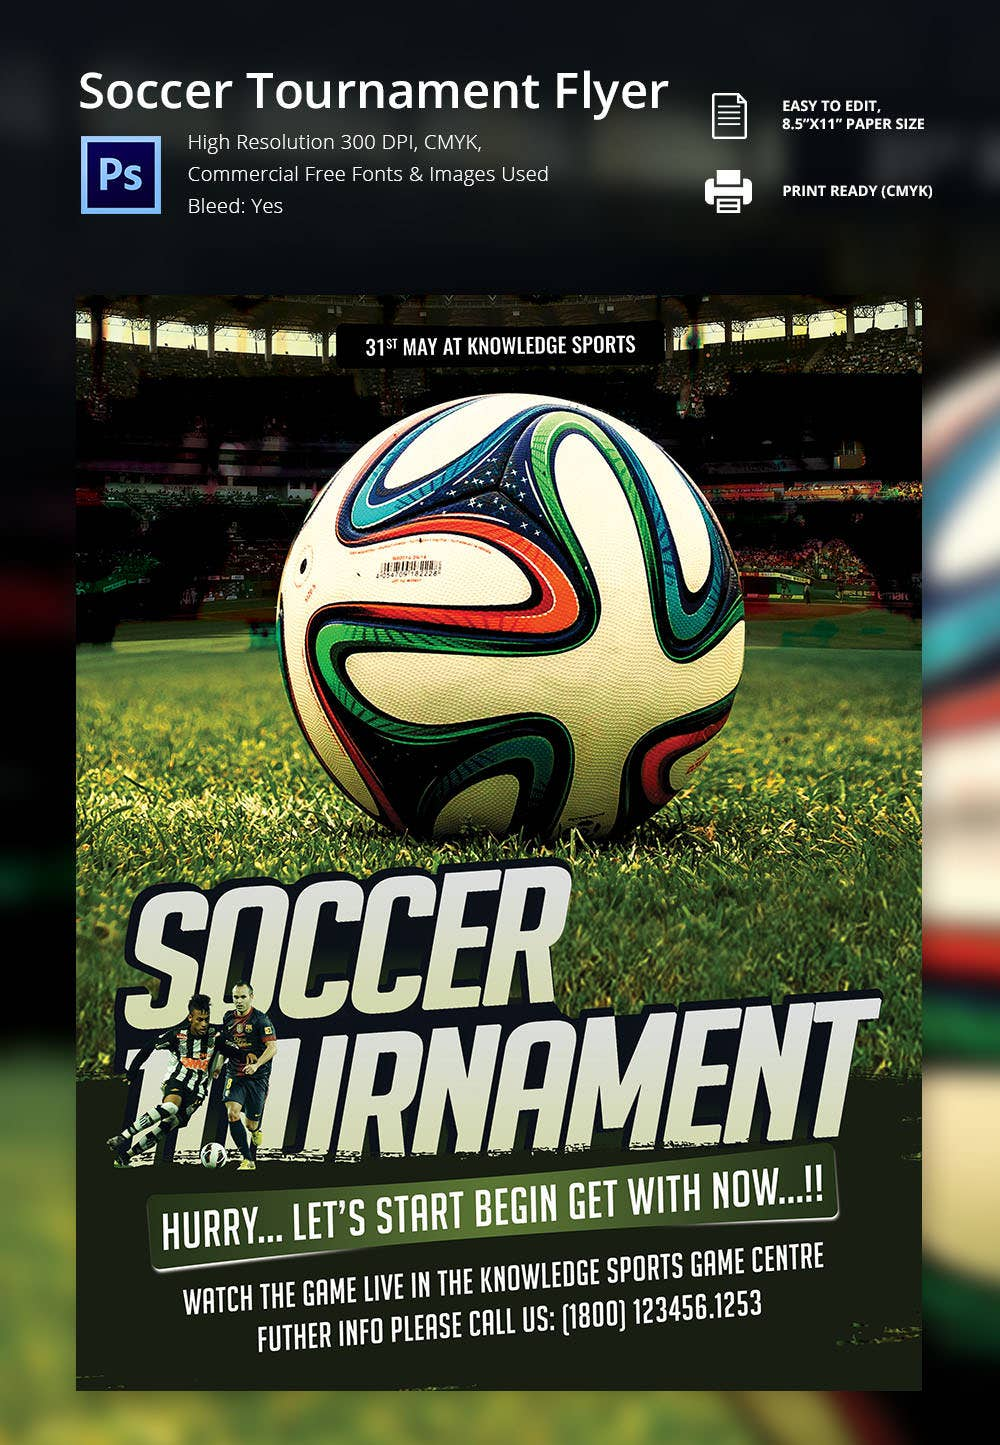 135 psd flyer templates psd eps ai indesign format soccer tour nt flyer template